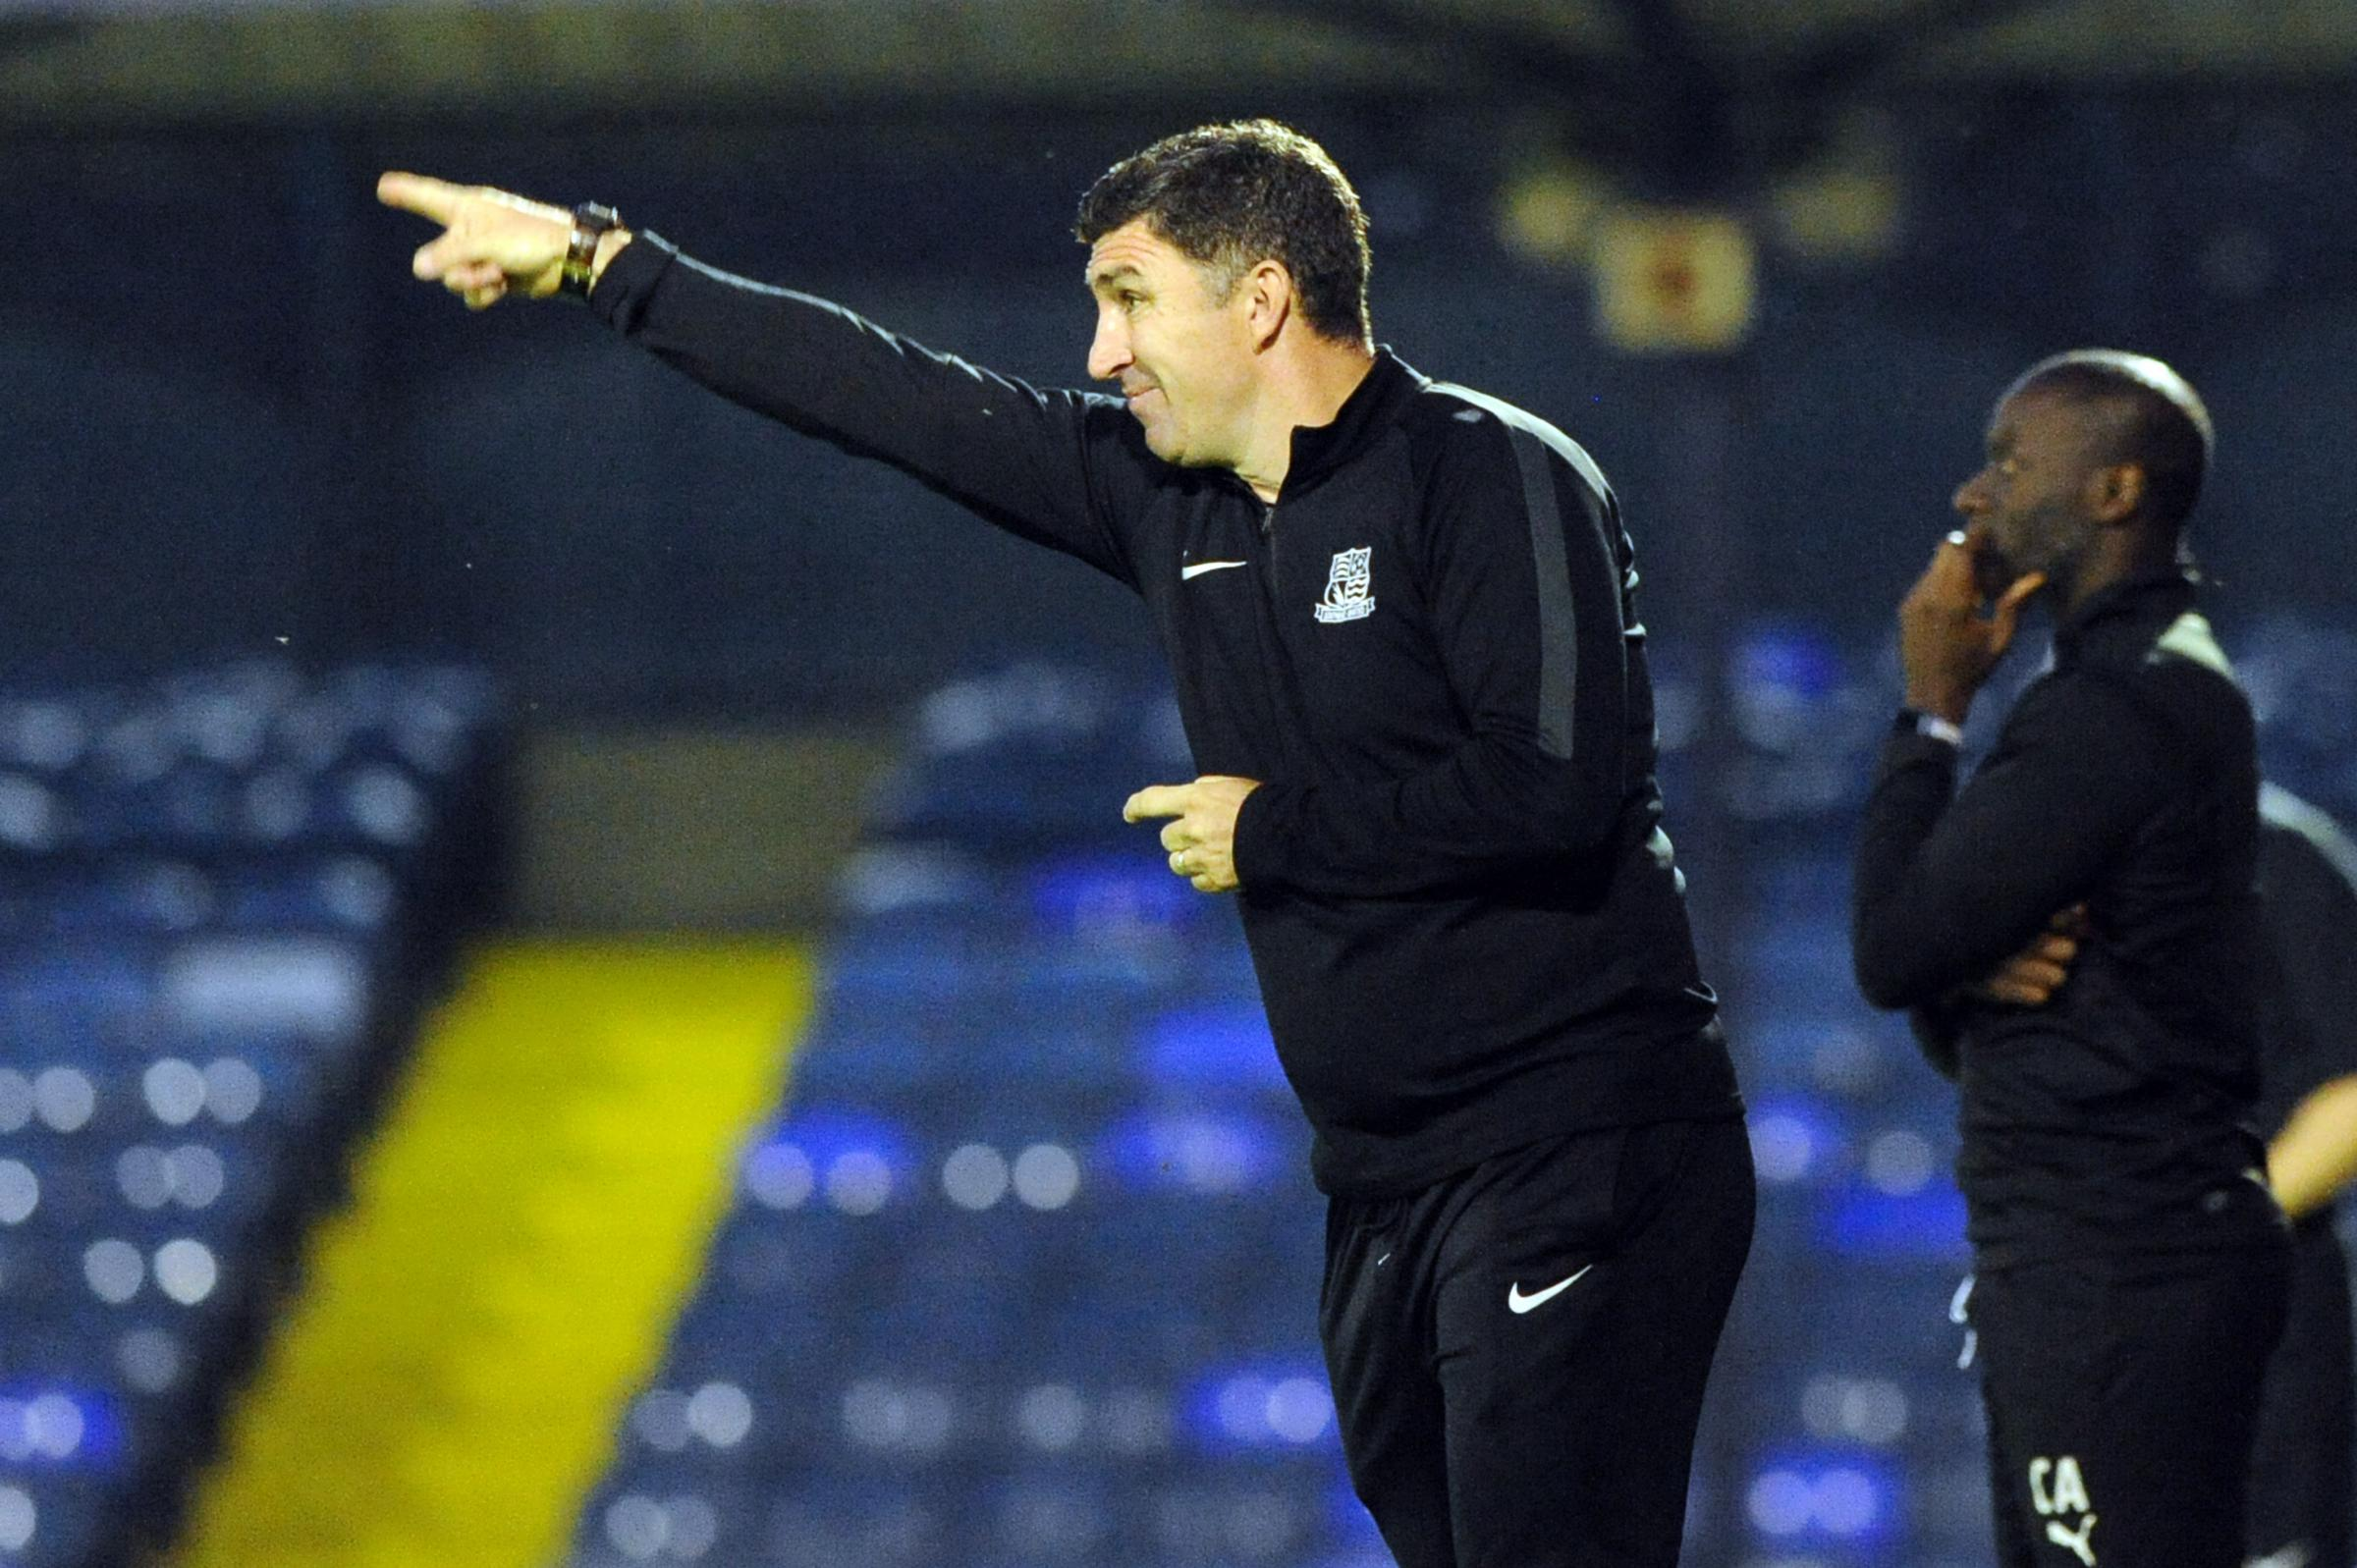 Expecting a tough test - Southend United coach Kevin Maher